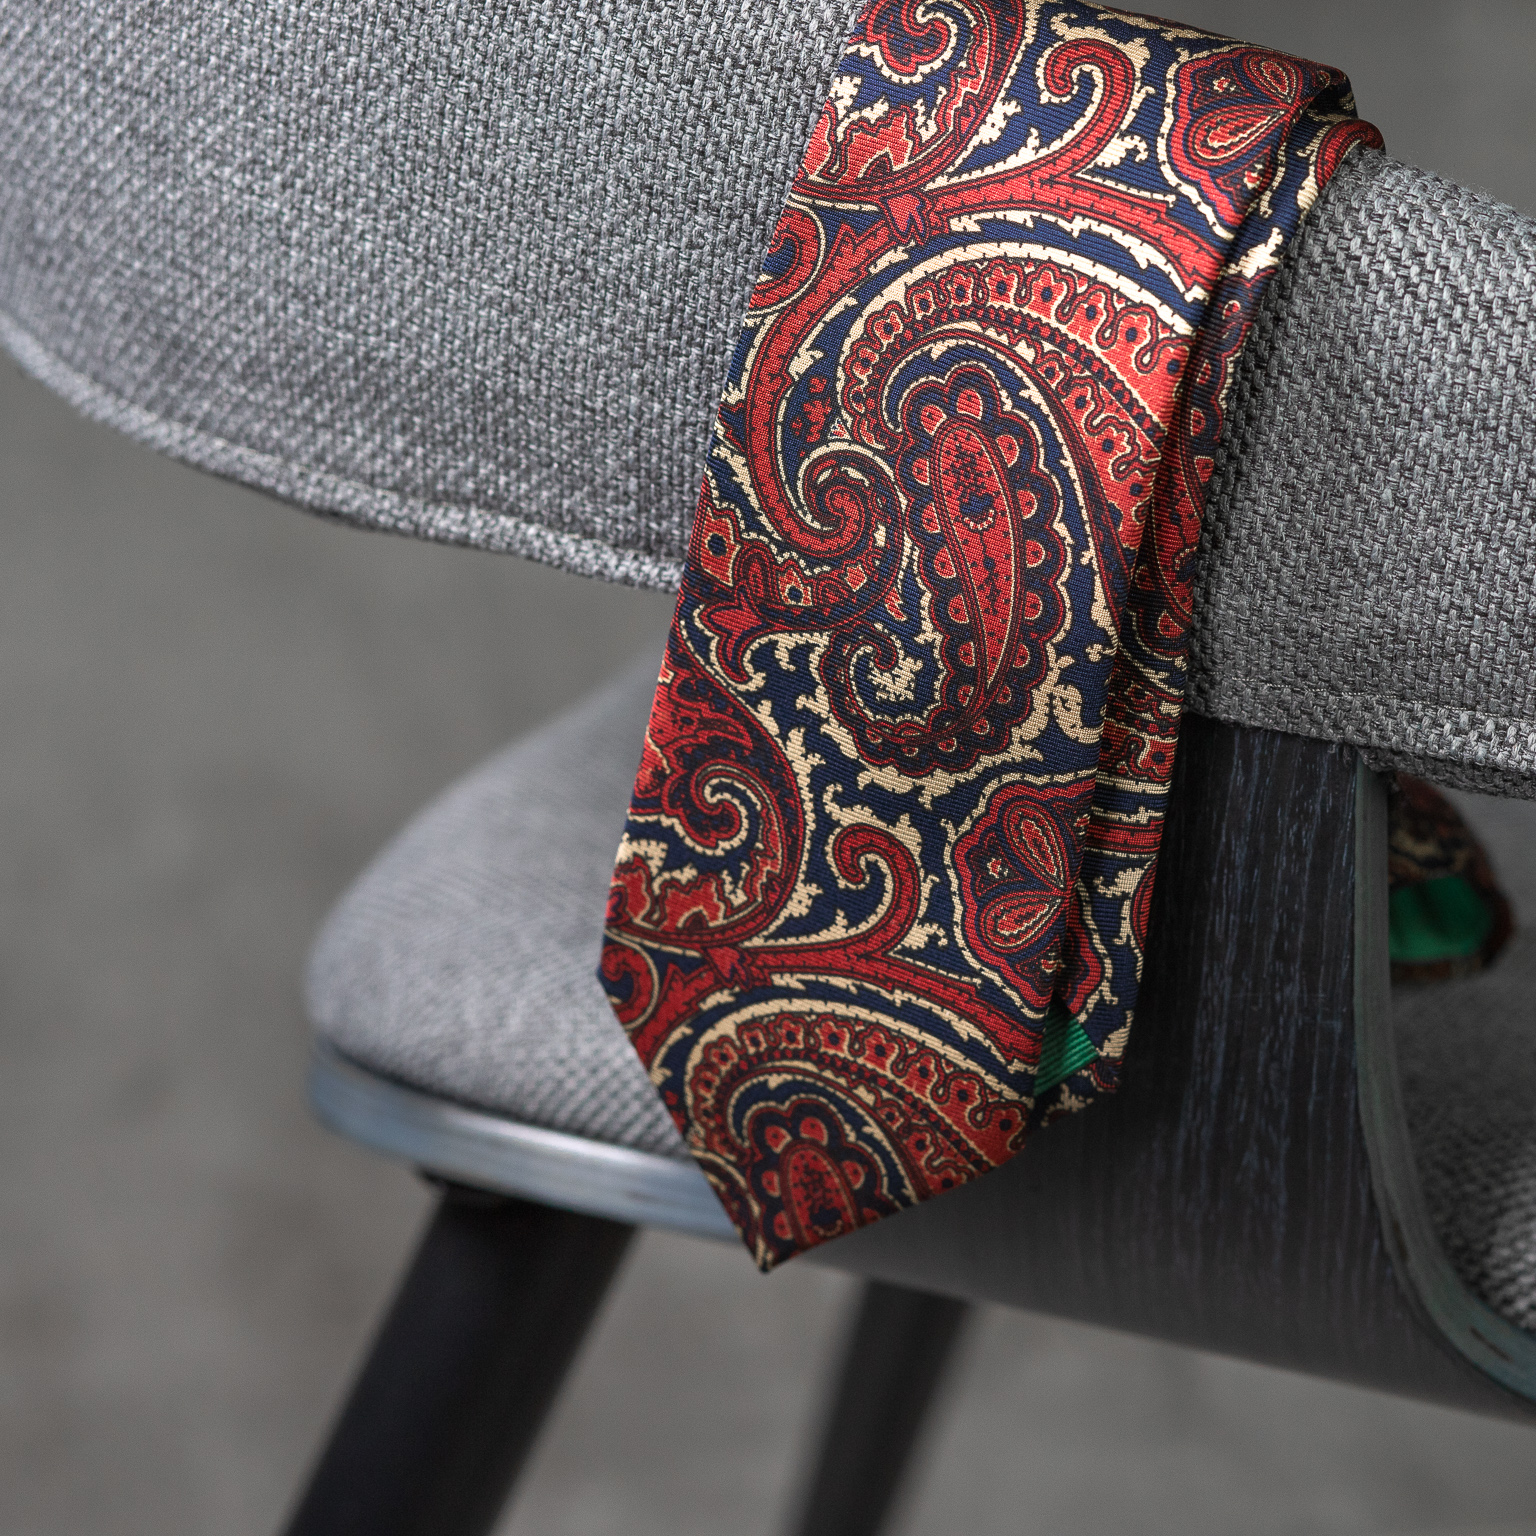 ANCIENT-MADDER-0182-Tie-Initials-Corbata-Iniciales-The-Seelk-3